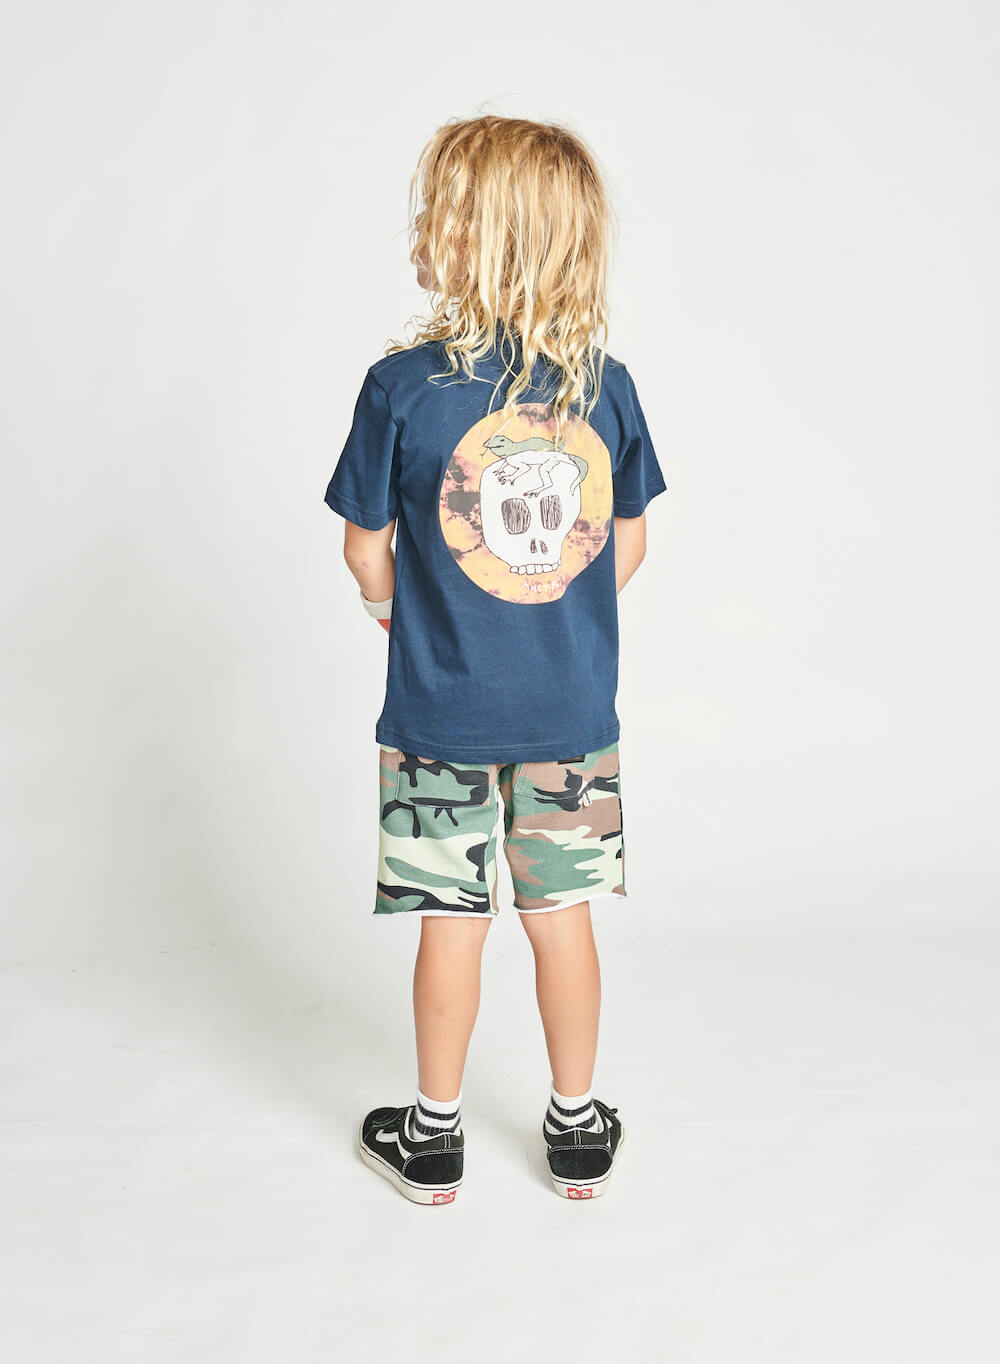 Munster Cocoskull Tee Midnight | Tiny People